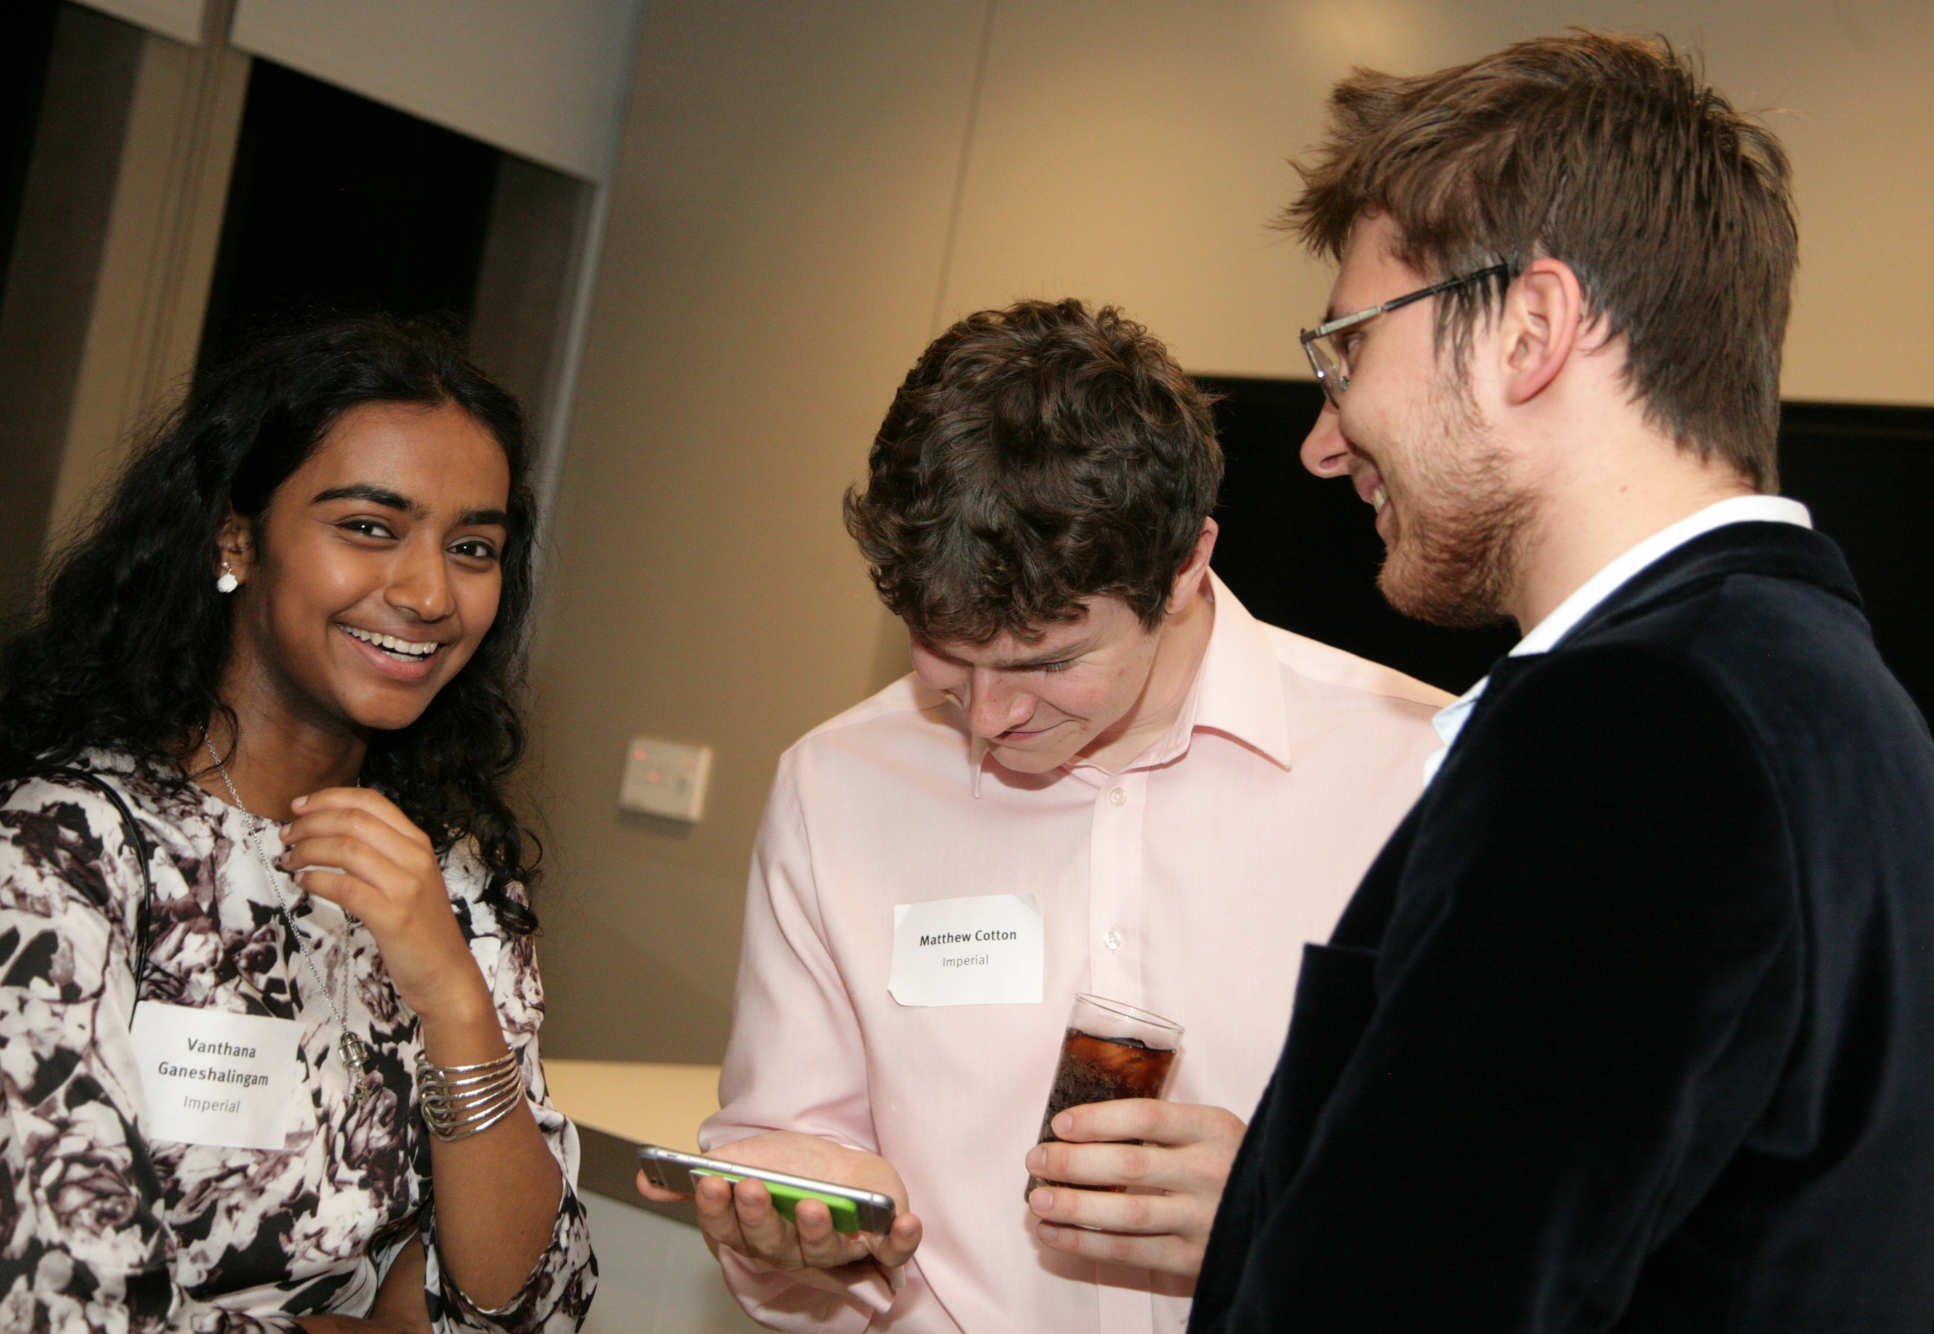 Students from Imperial and MIT met to exchange stories and experiences